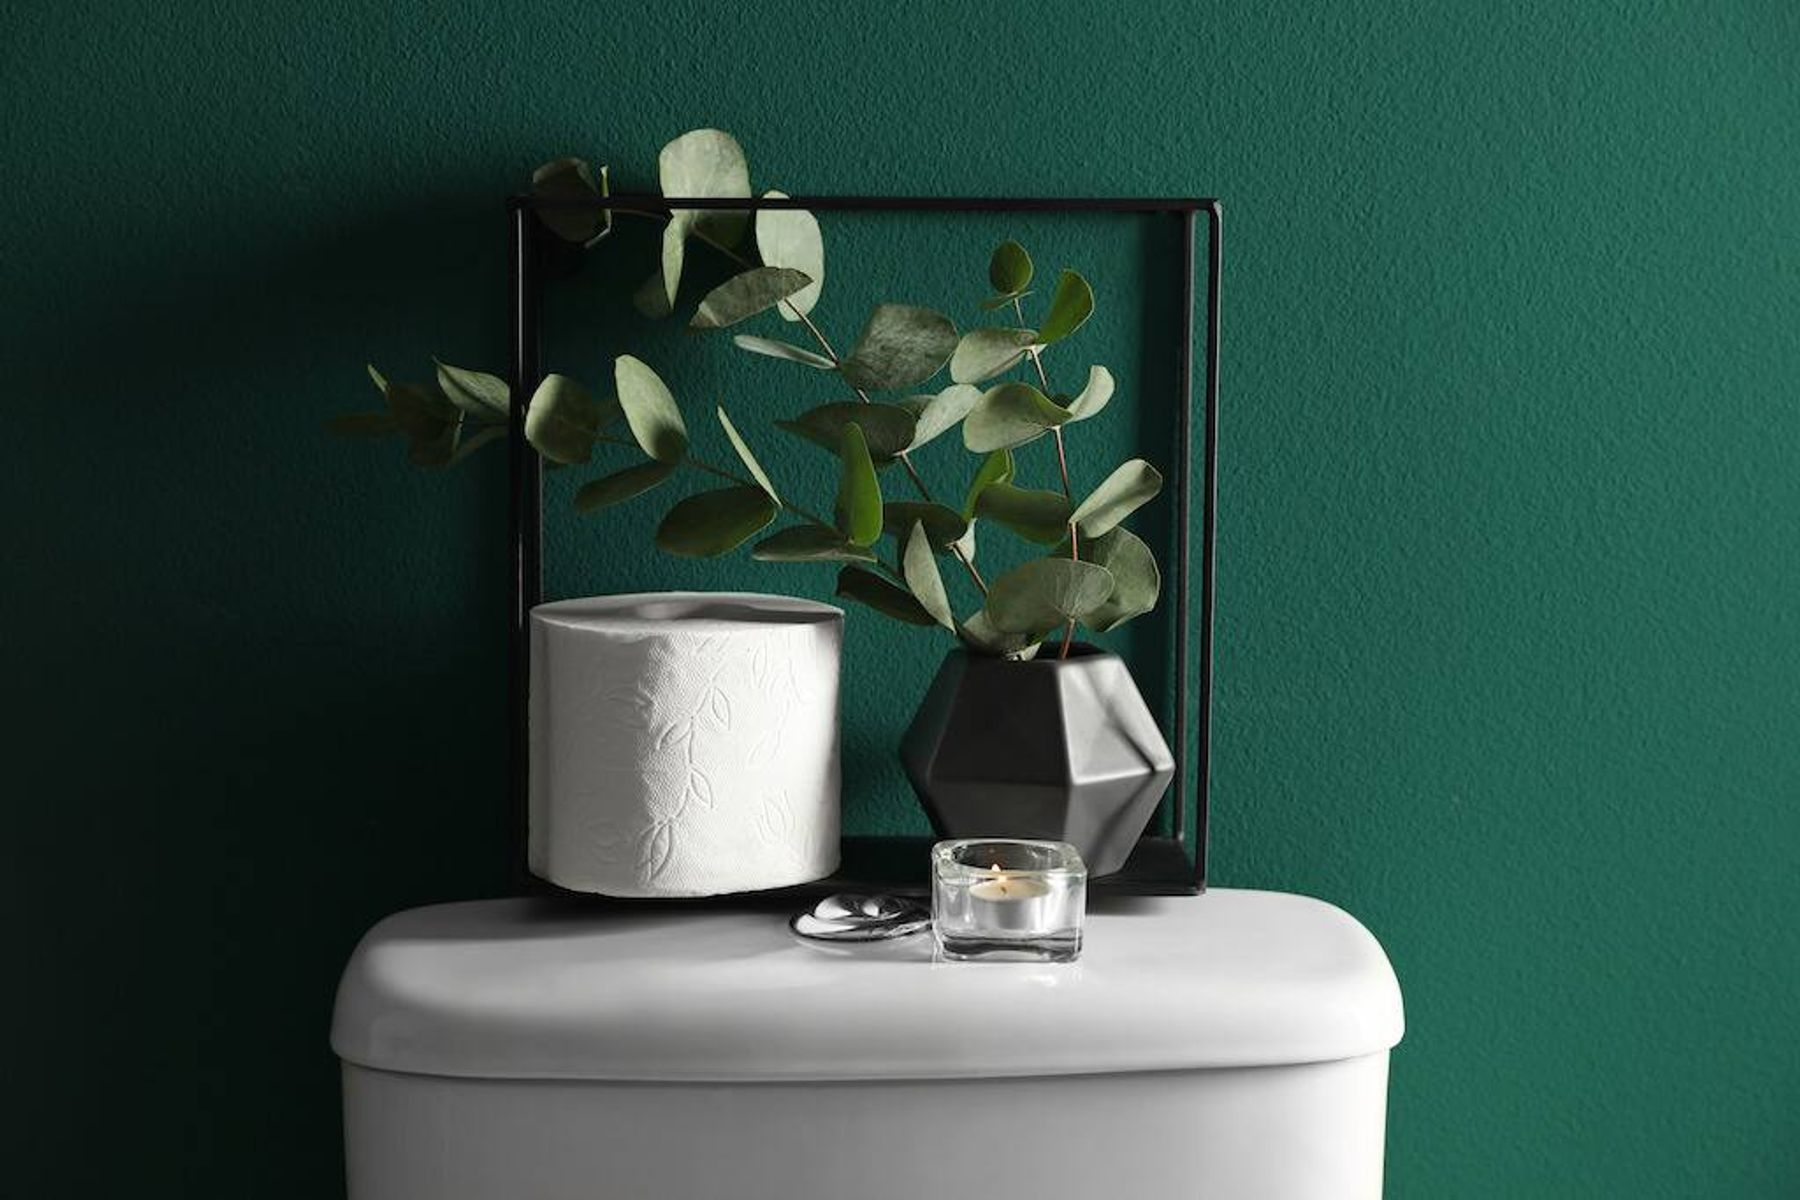 Clean toilet tank with ornaments